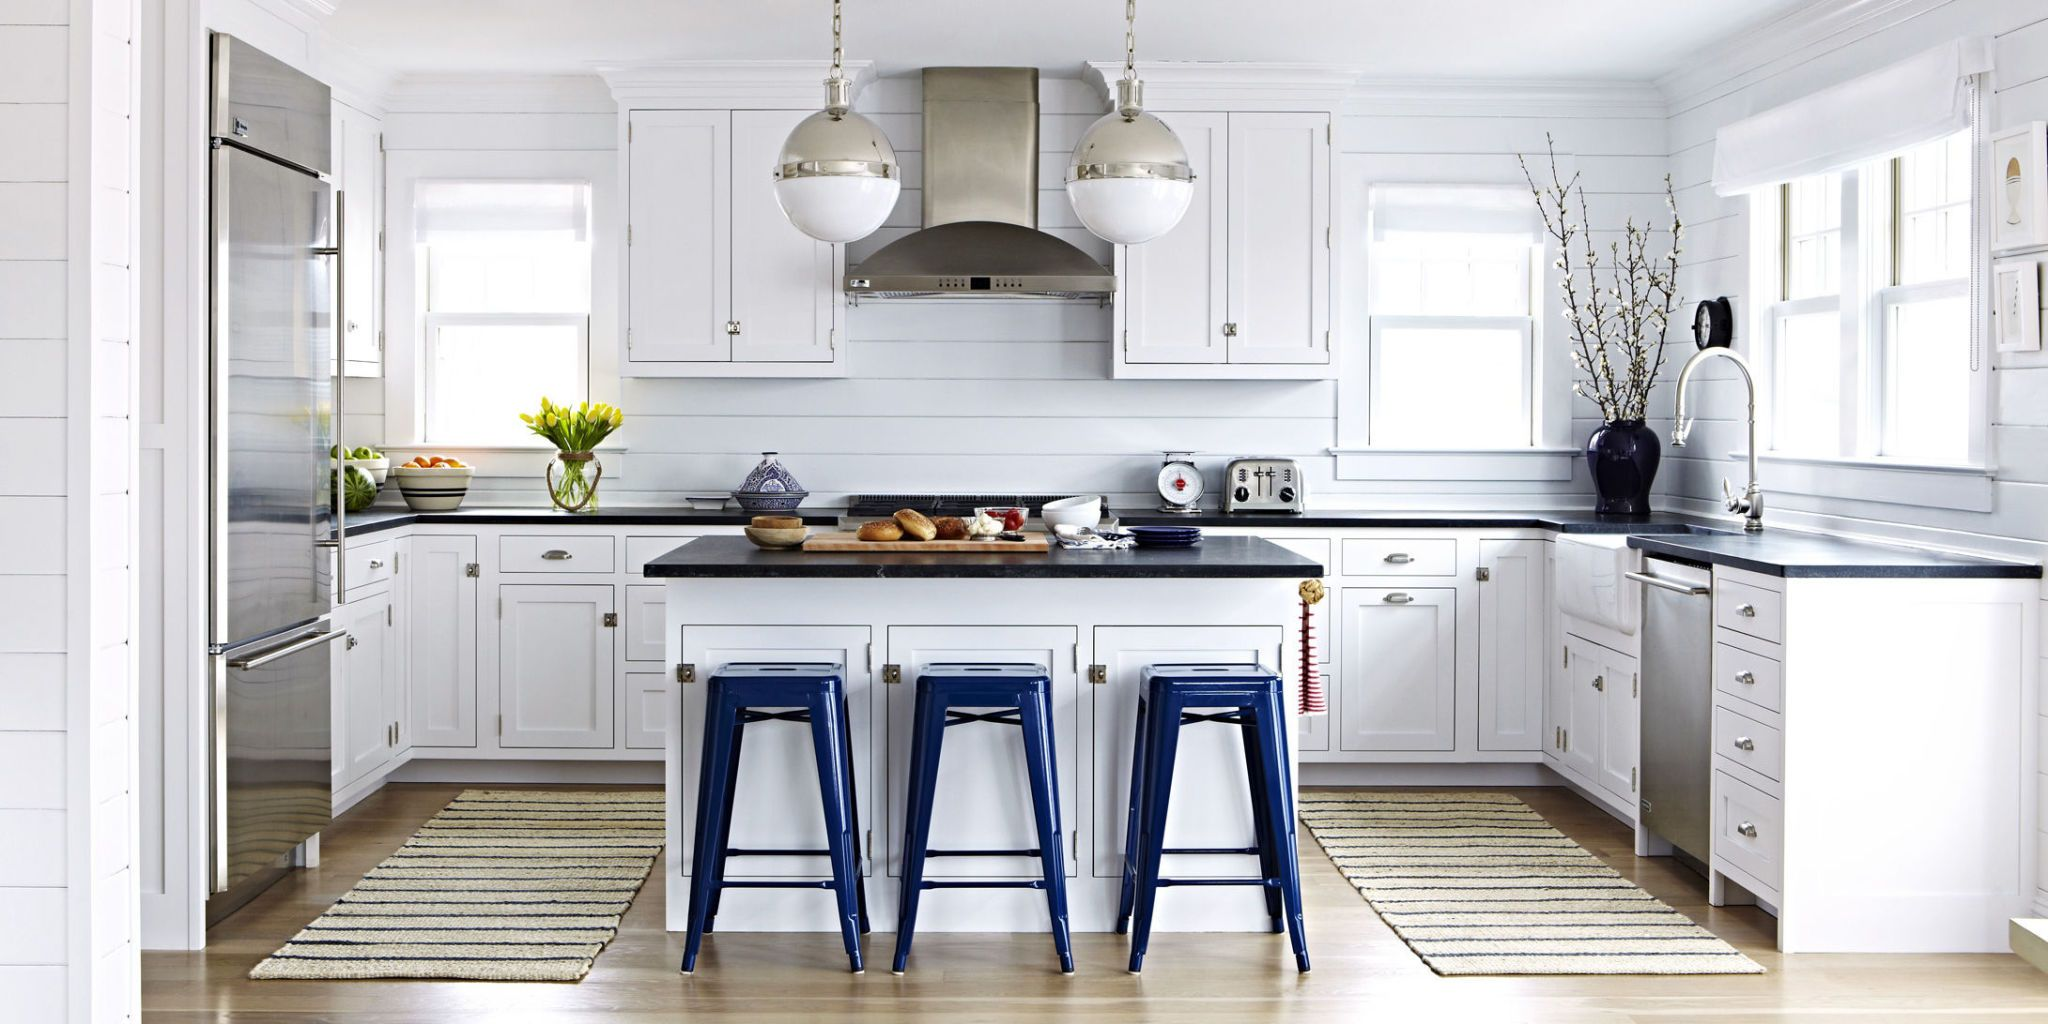 decorating kitchen table with 8 chairs 40 best ideas decor and for design